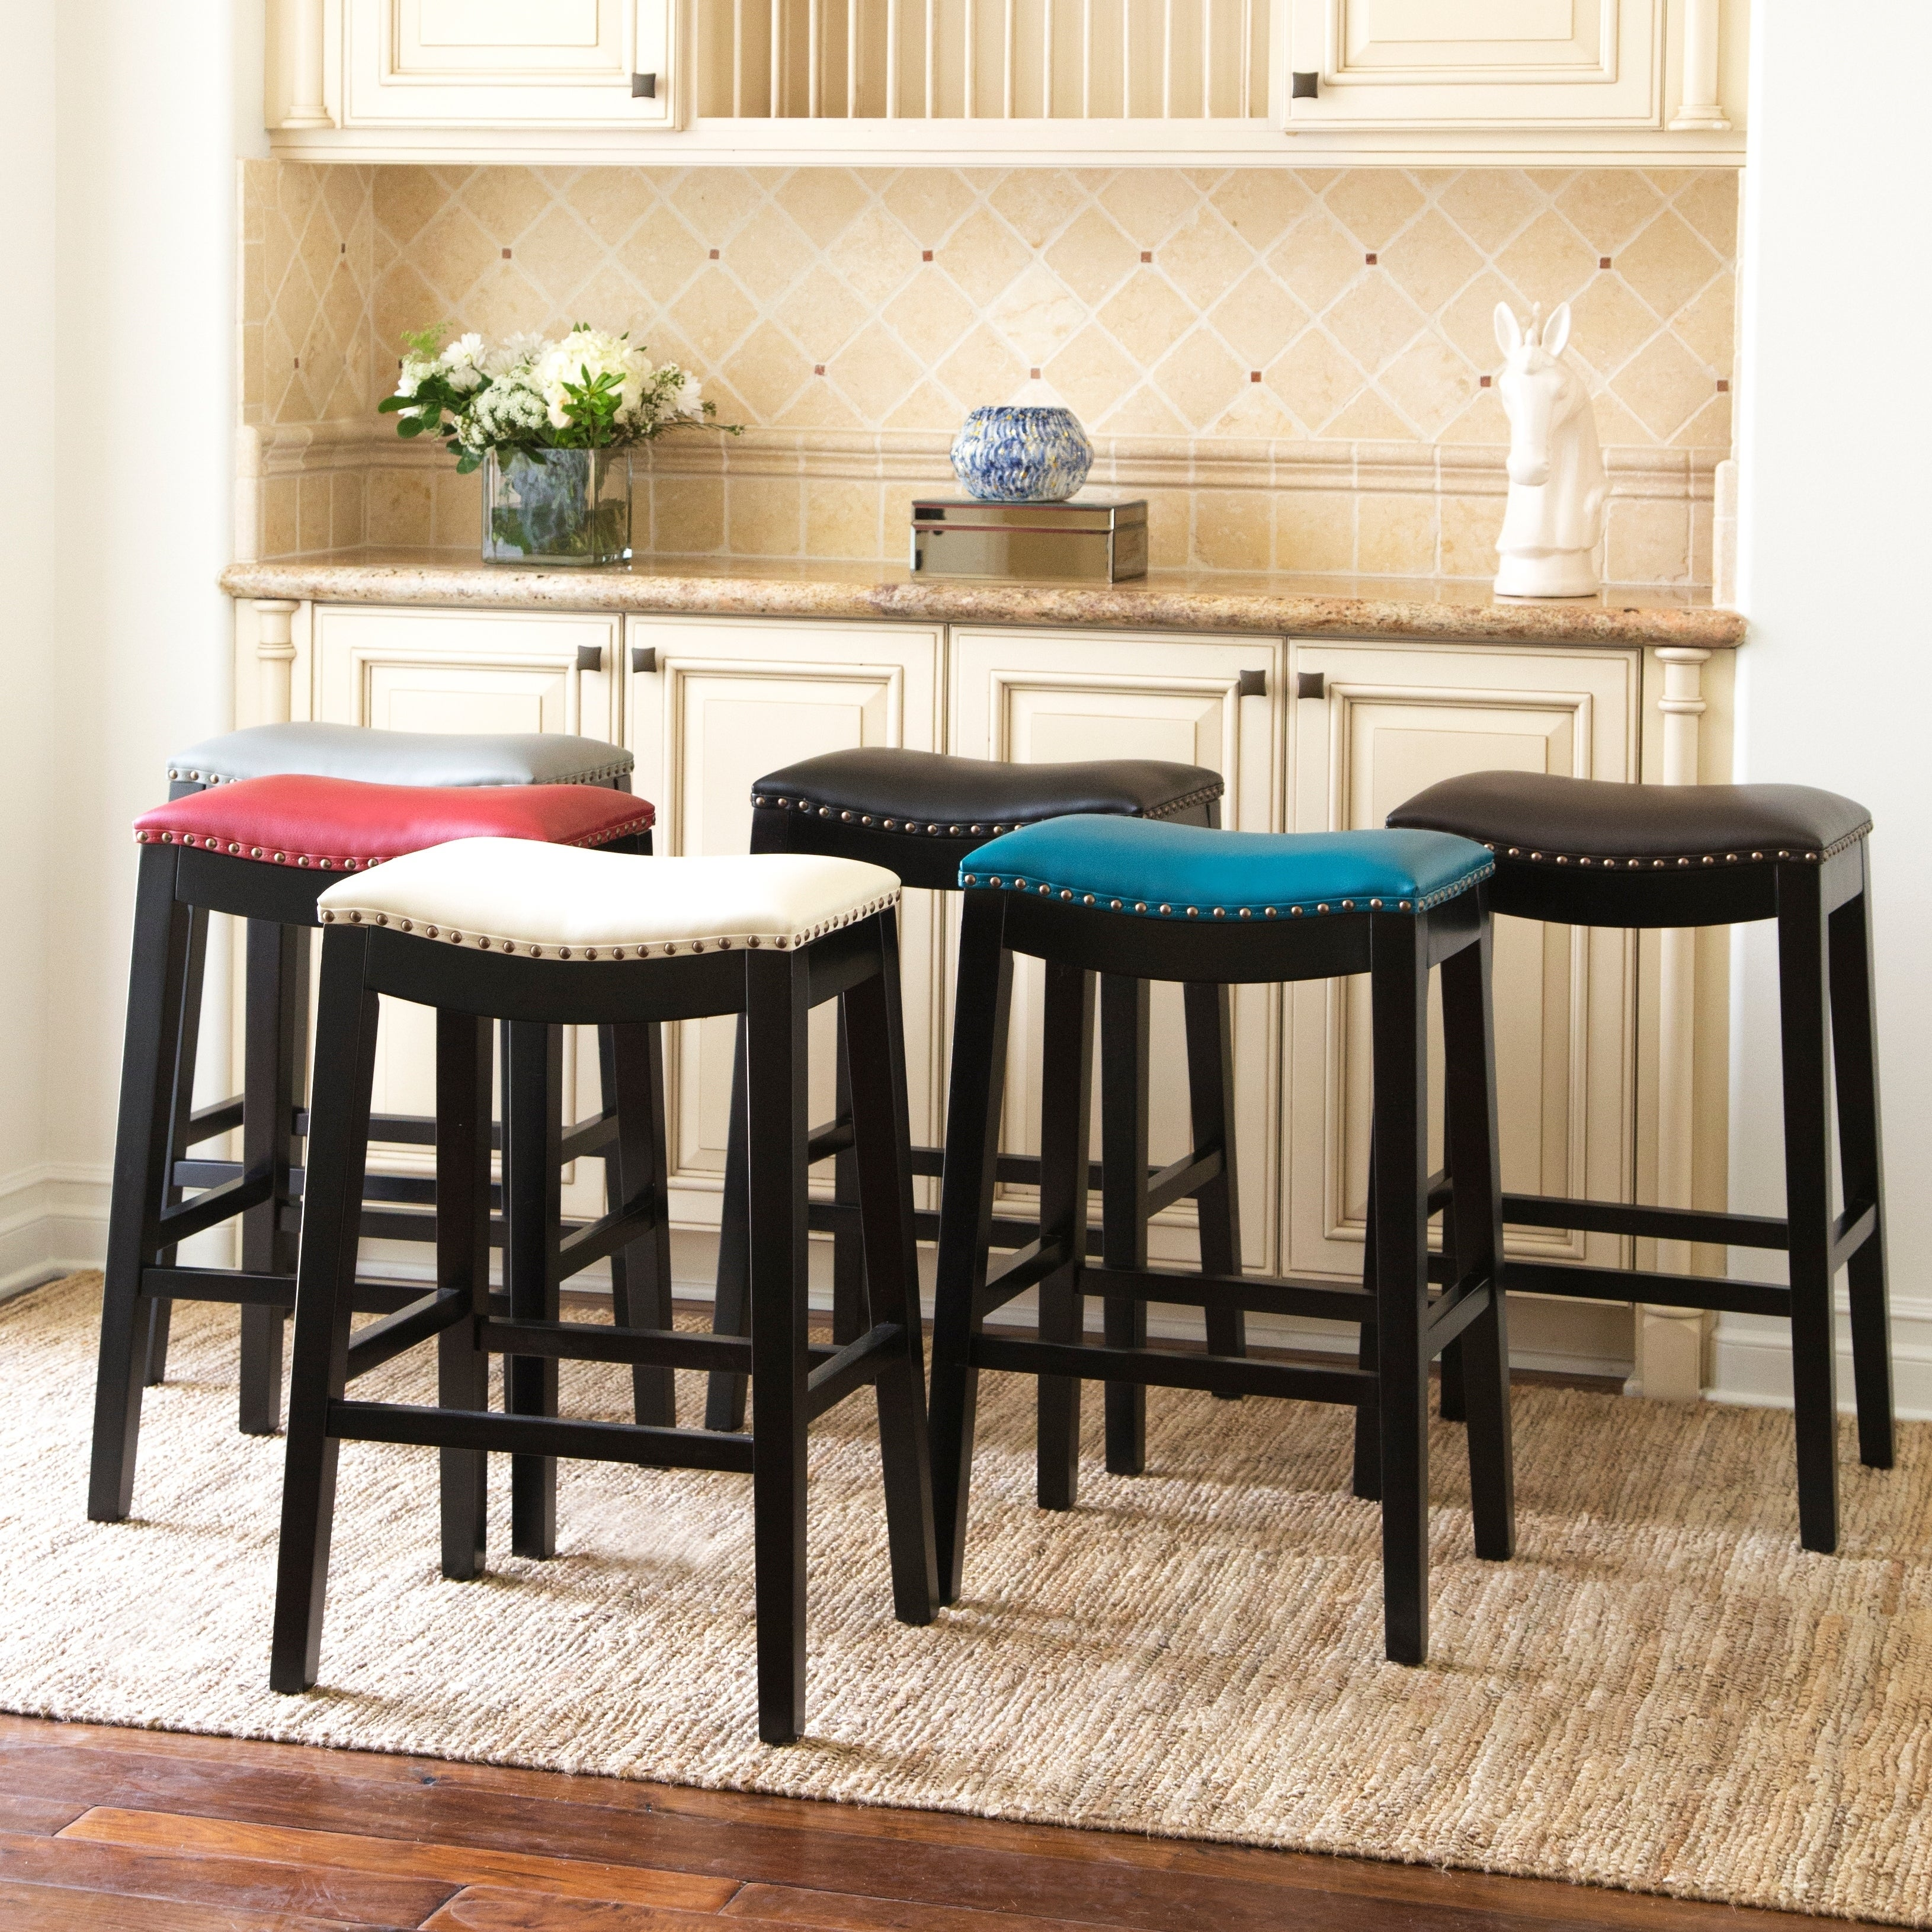 Astonishing Copper Grove Divjake 26 In Bonded Leather Saddle Counter Stool Cjindustries Chair Design For Home Cjindustriesco